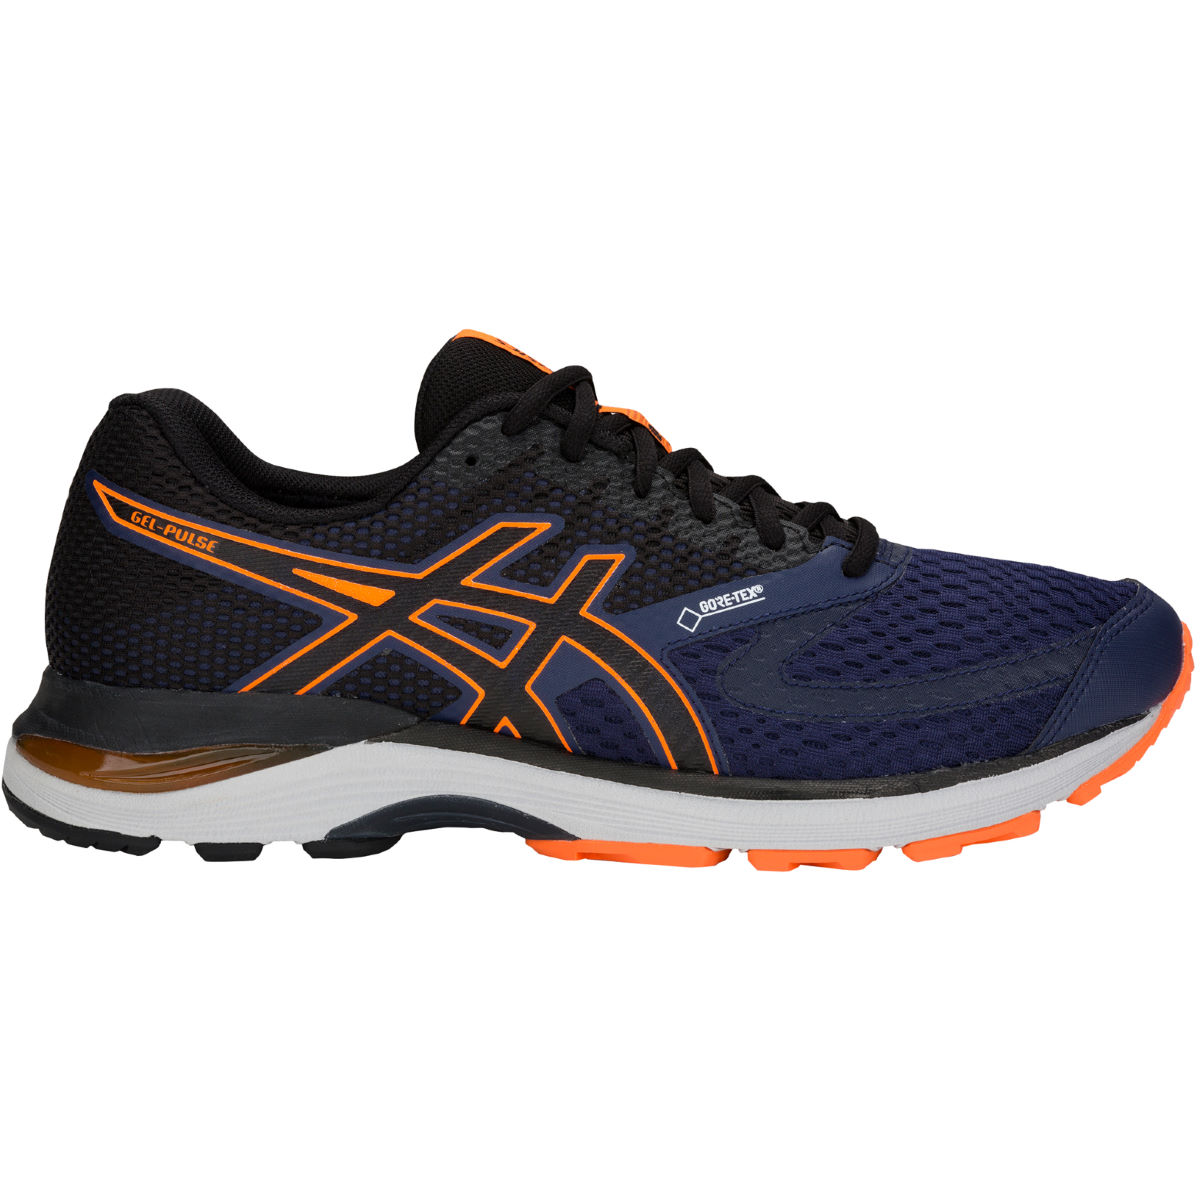 Asics Gel-Pulse 10 GTX Shoes - Zapatillas de trail running